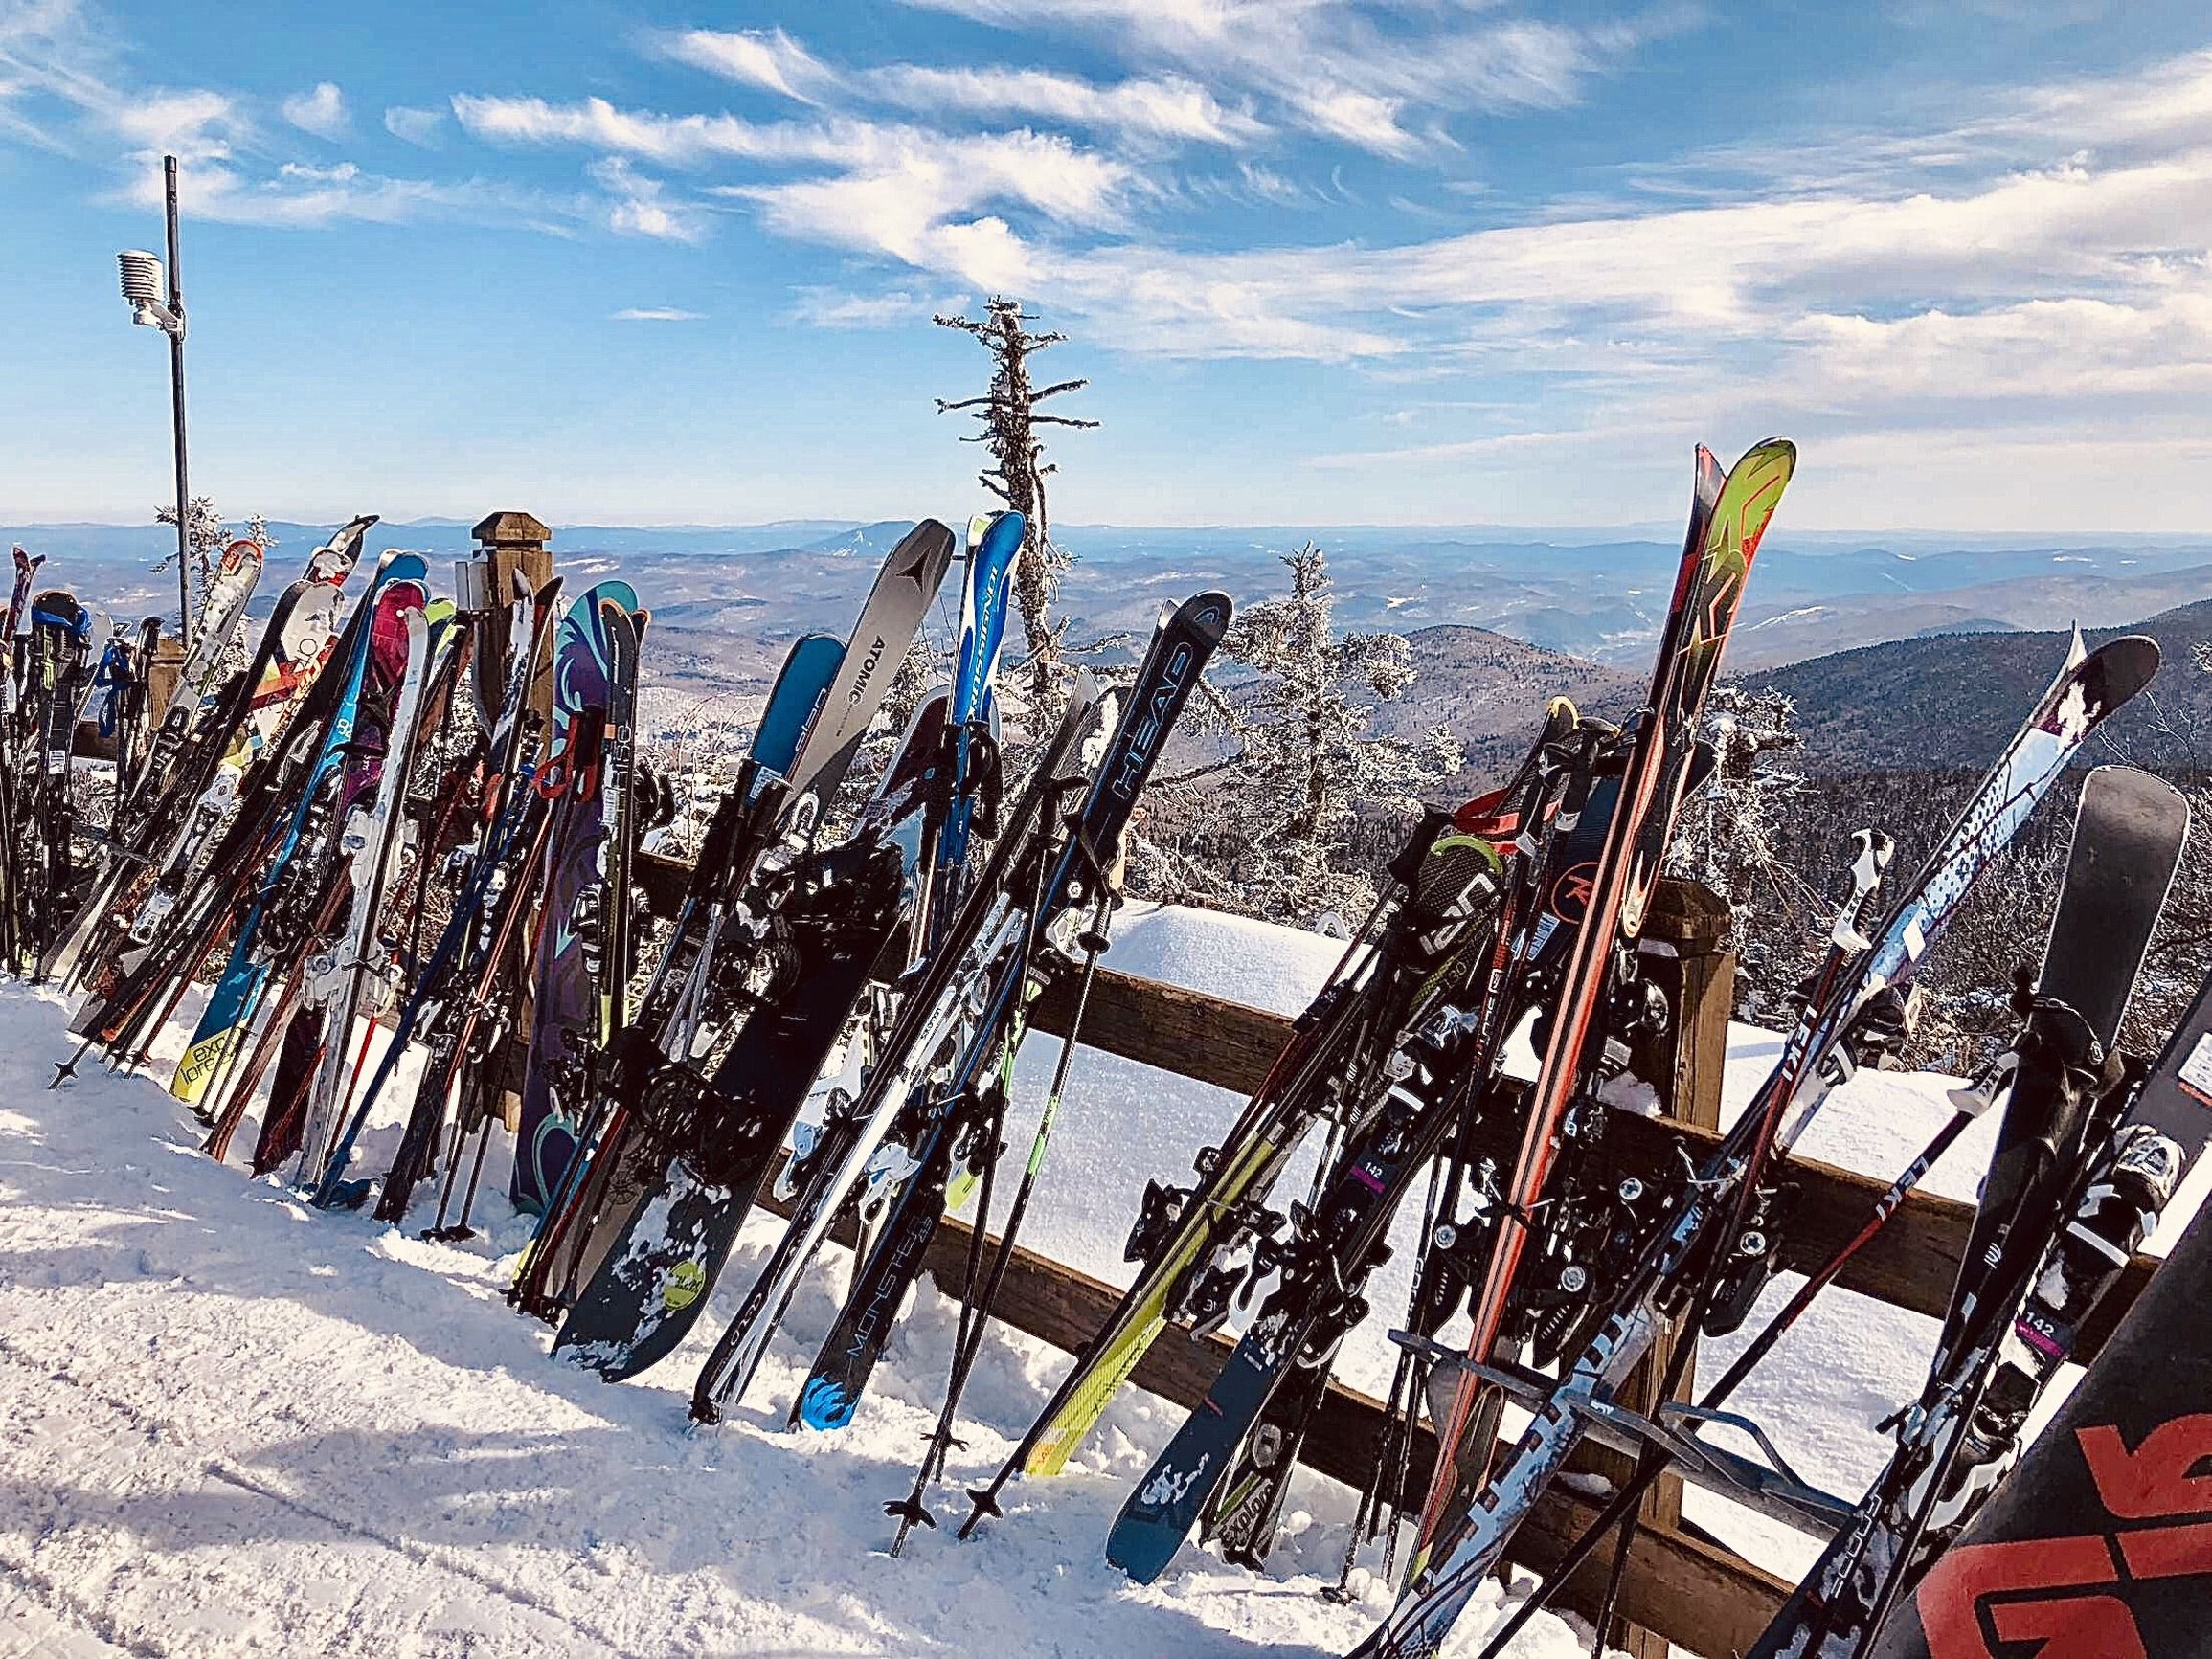 The 10 Best Places to Ski on the East Coast